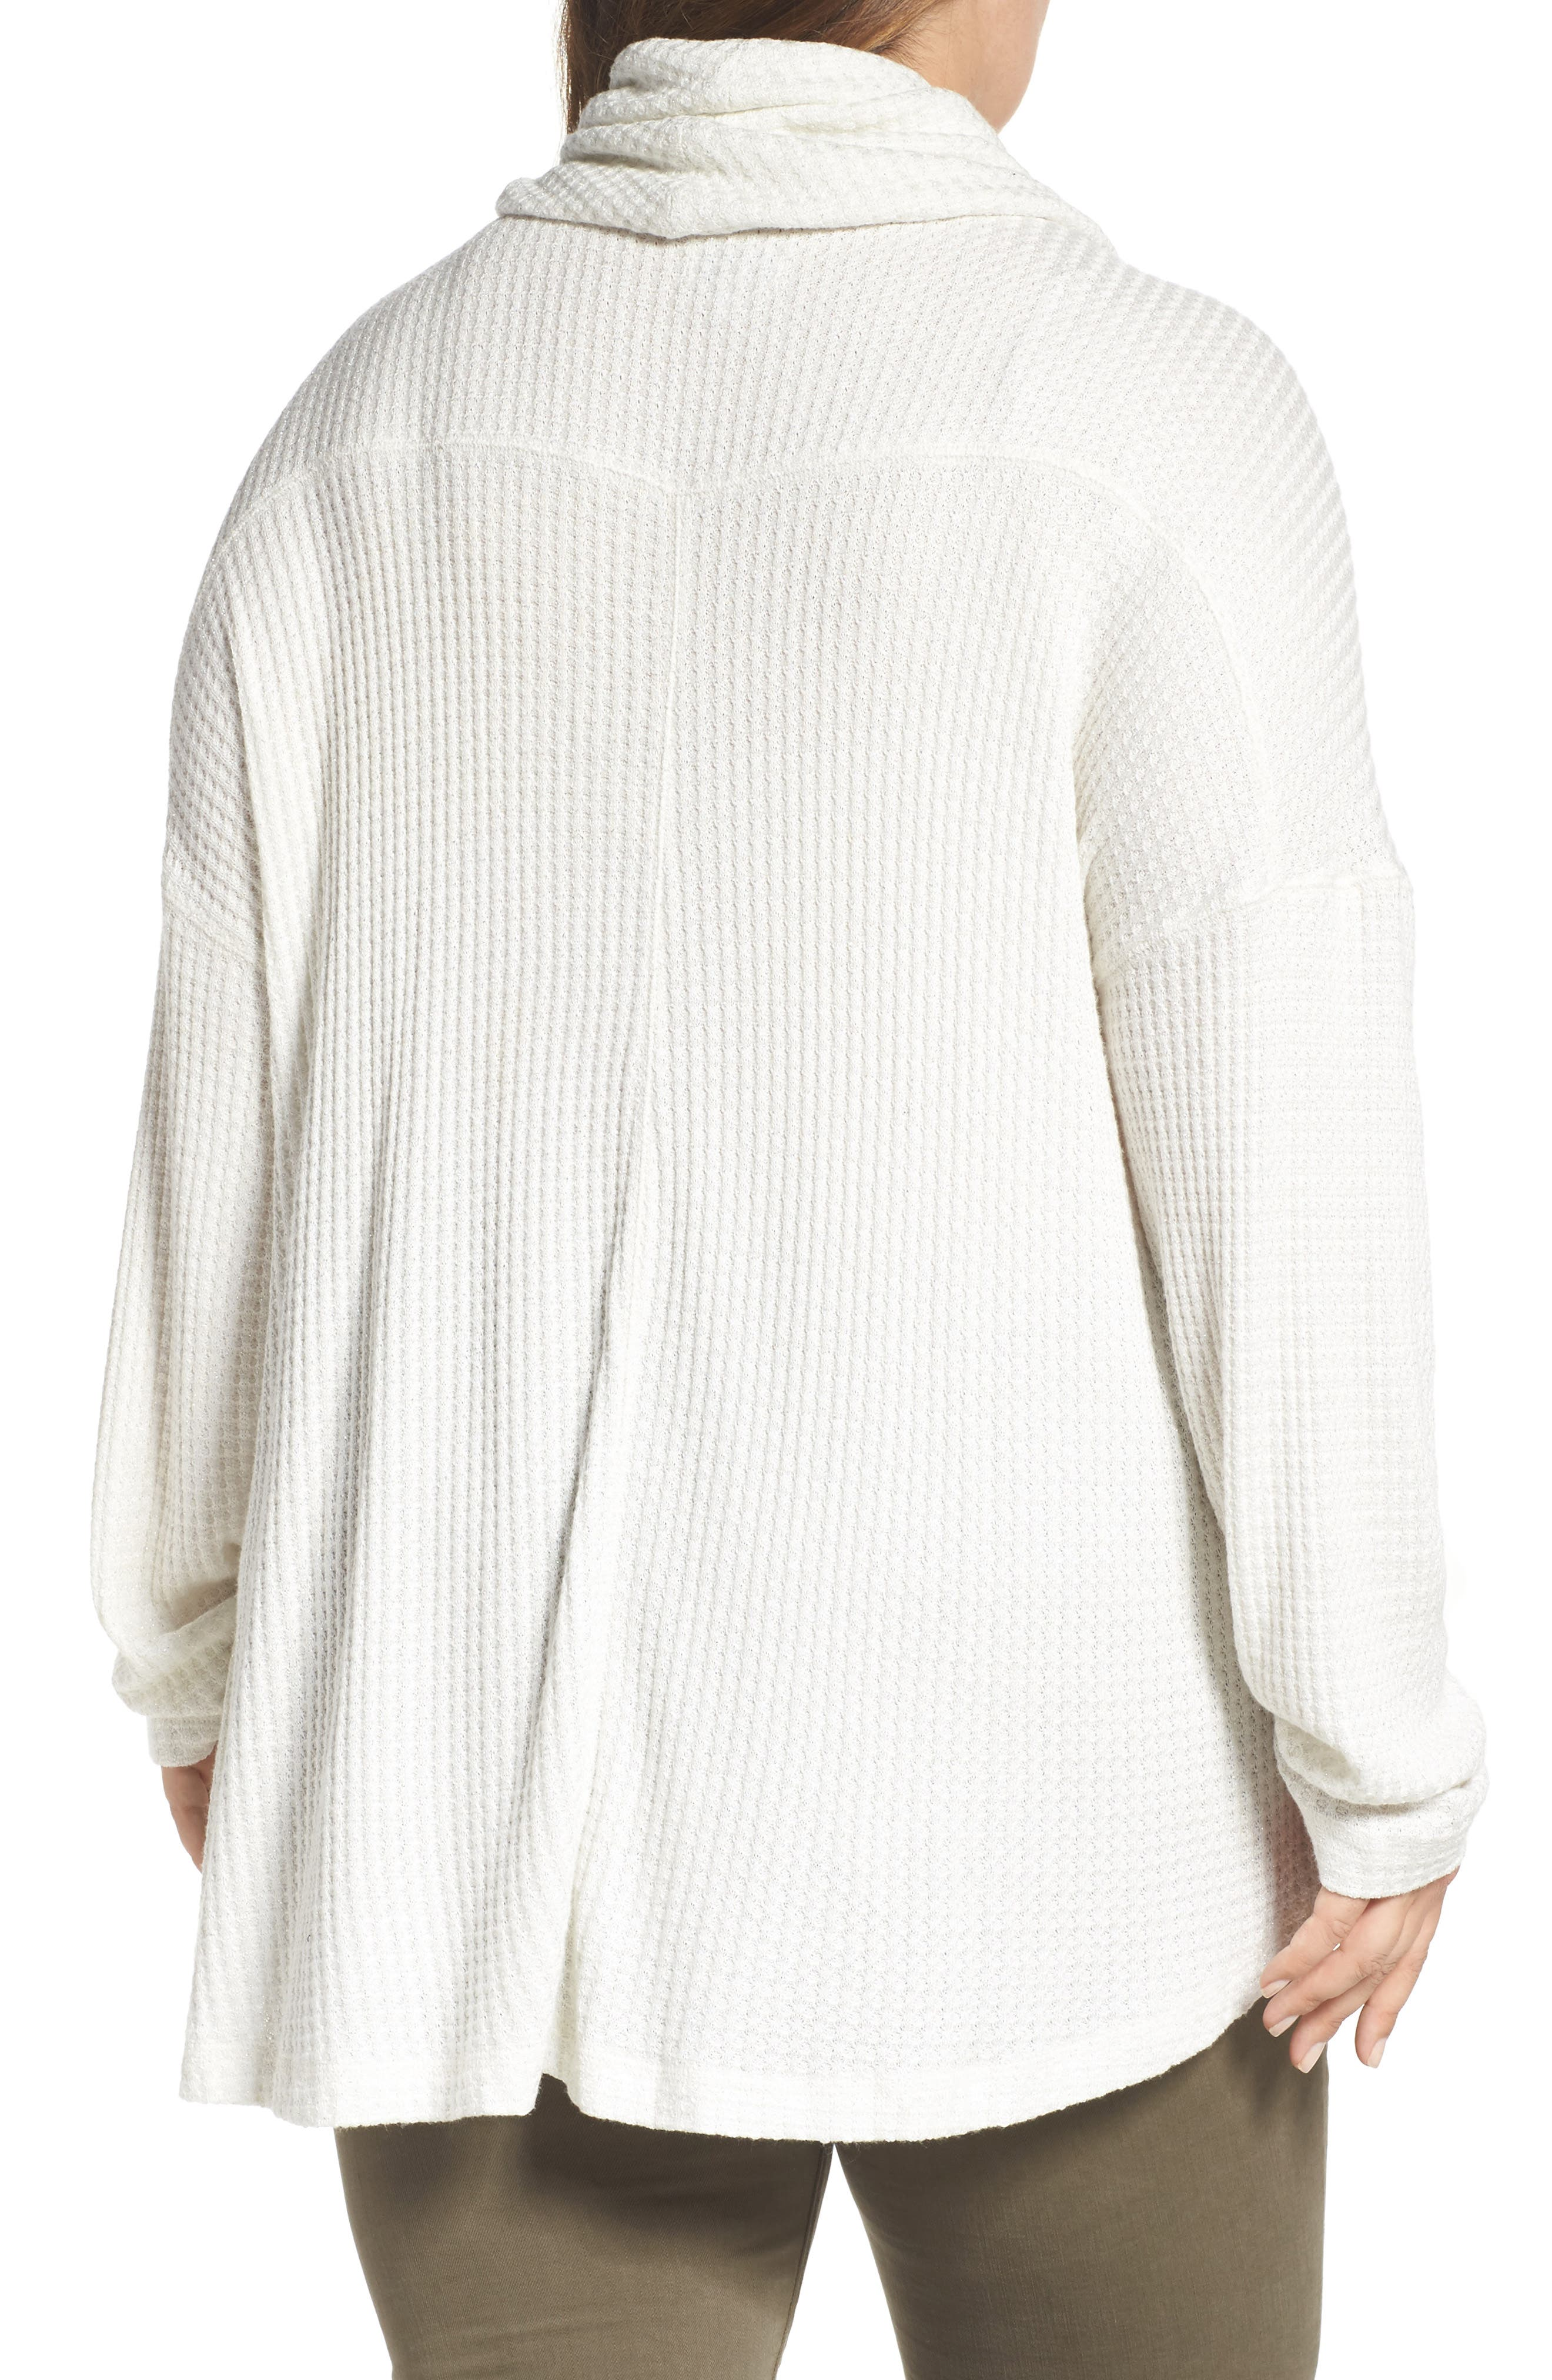 Cowl Neck Thermal Top,                             Alternate thumbnail 2, color,                             110